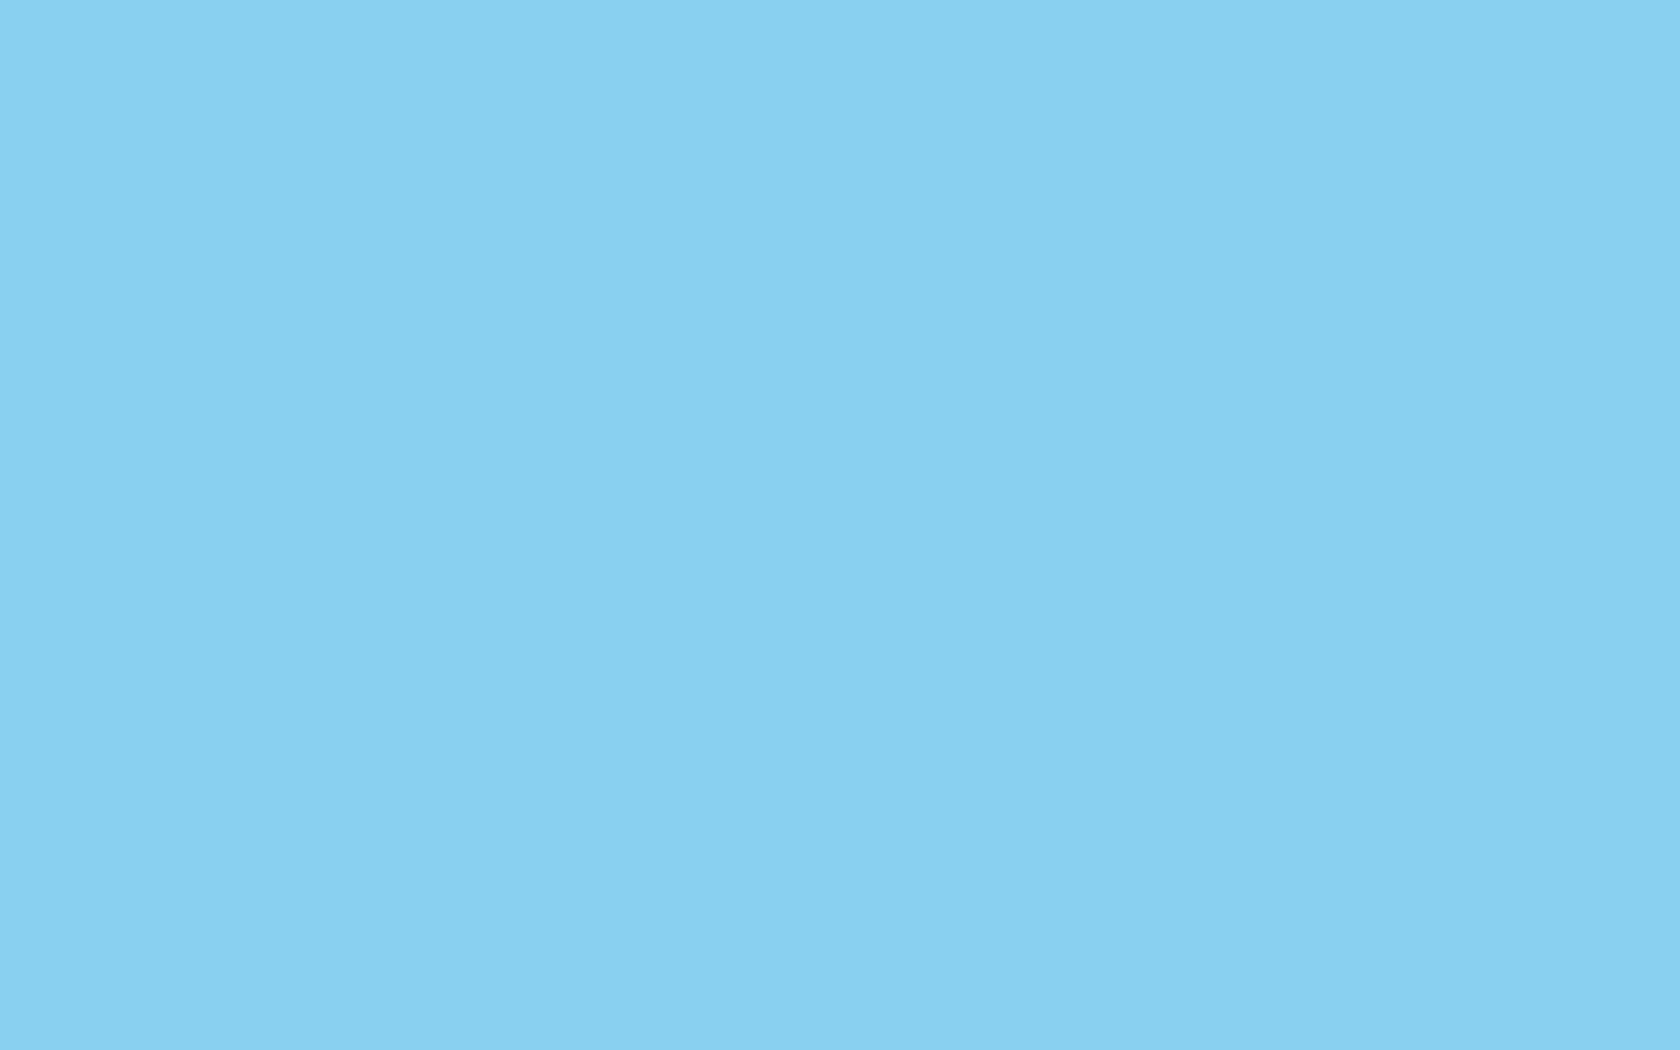 1680x1050 Baby Blue Solid Color Background